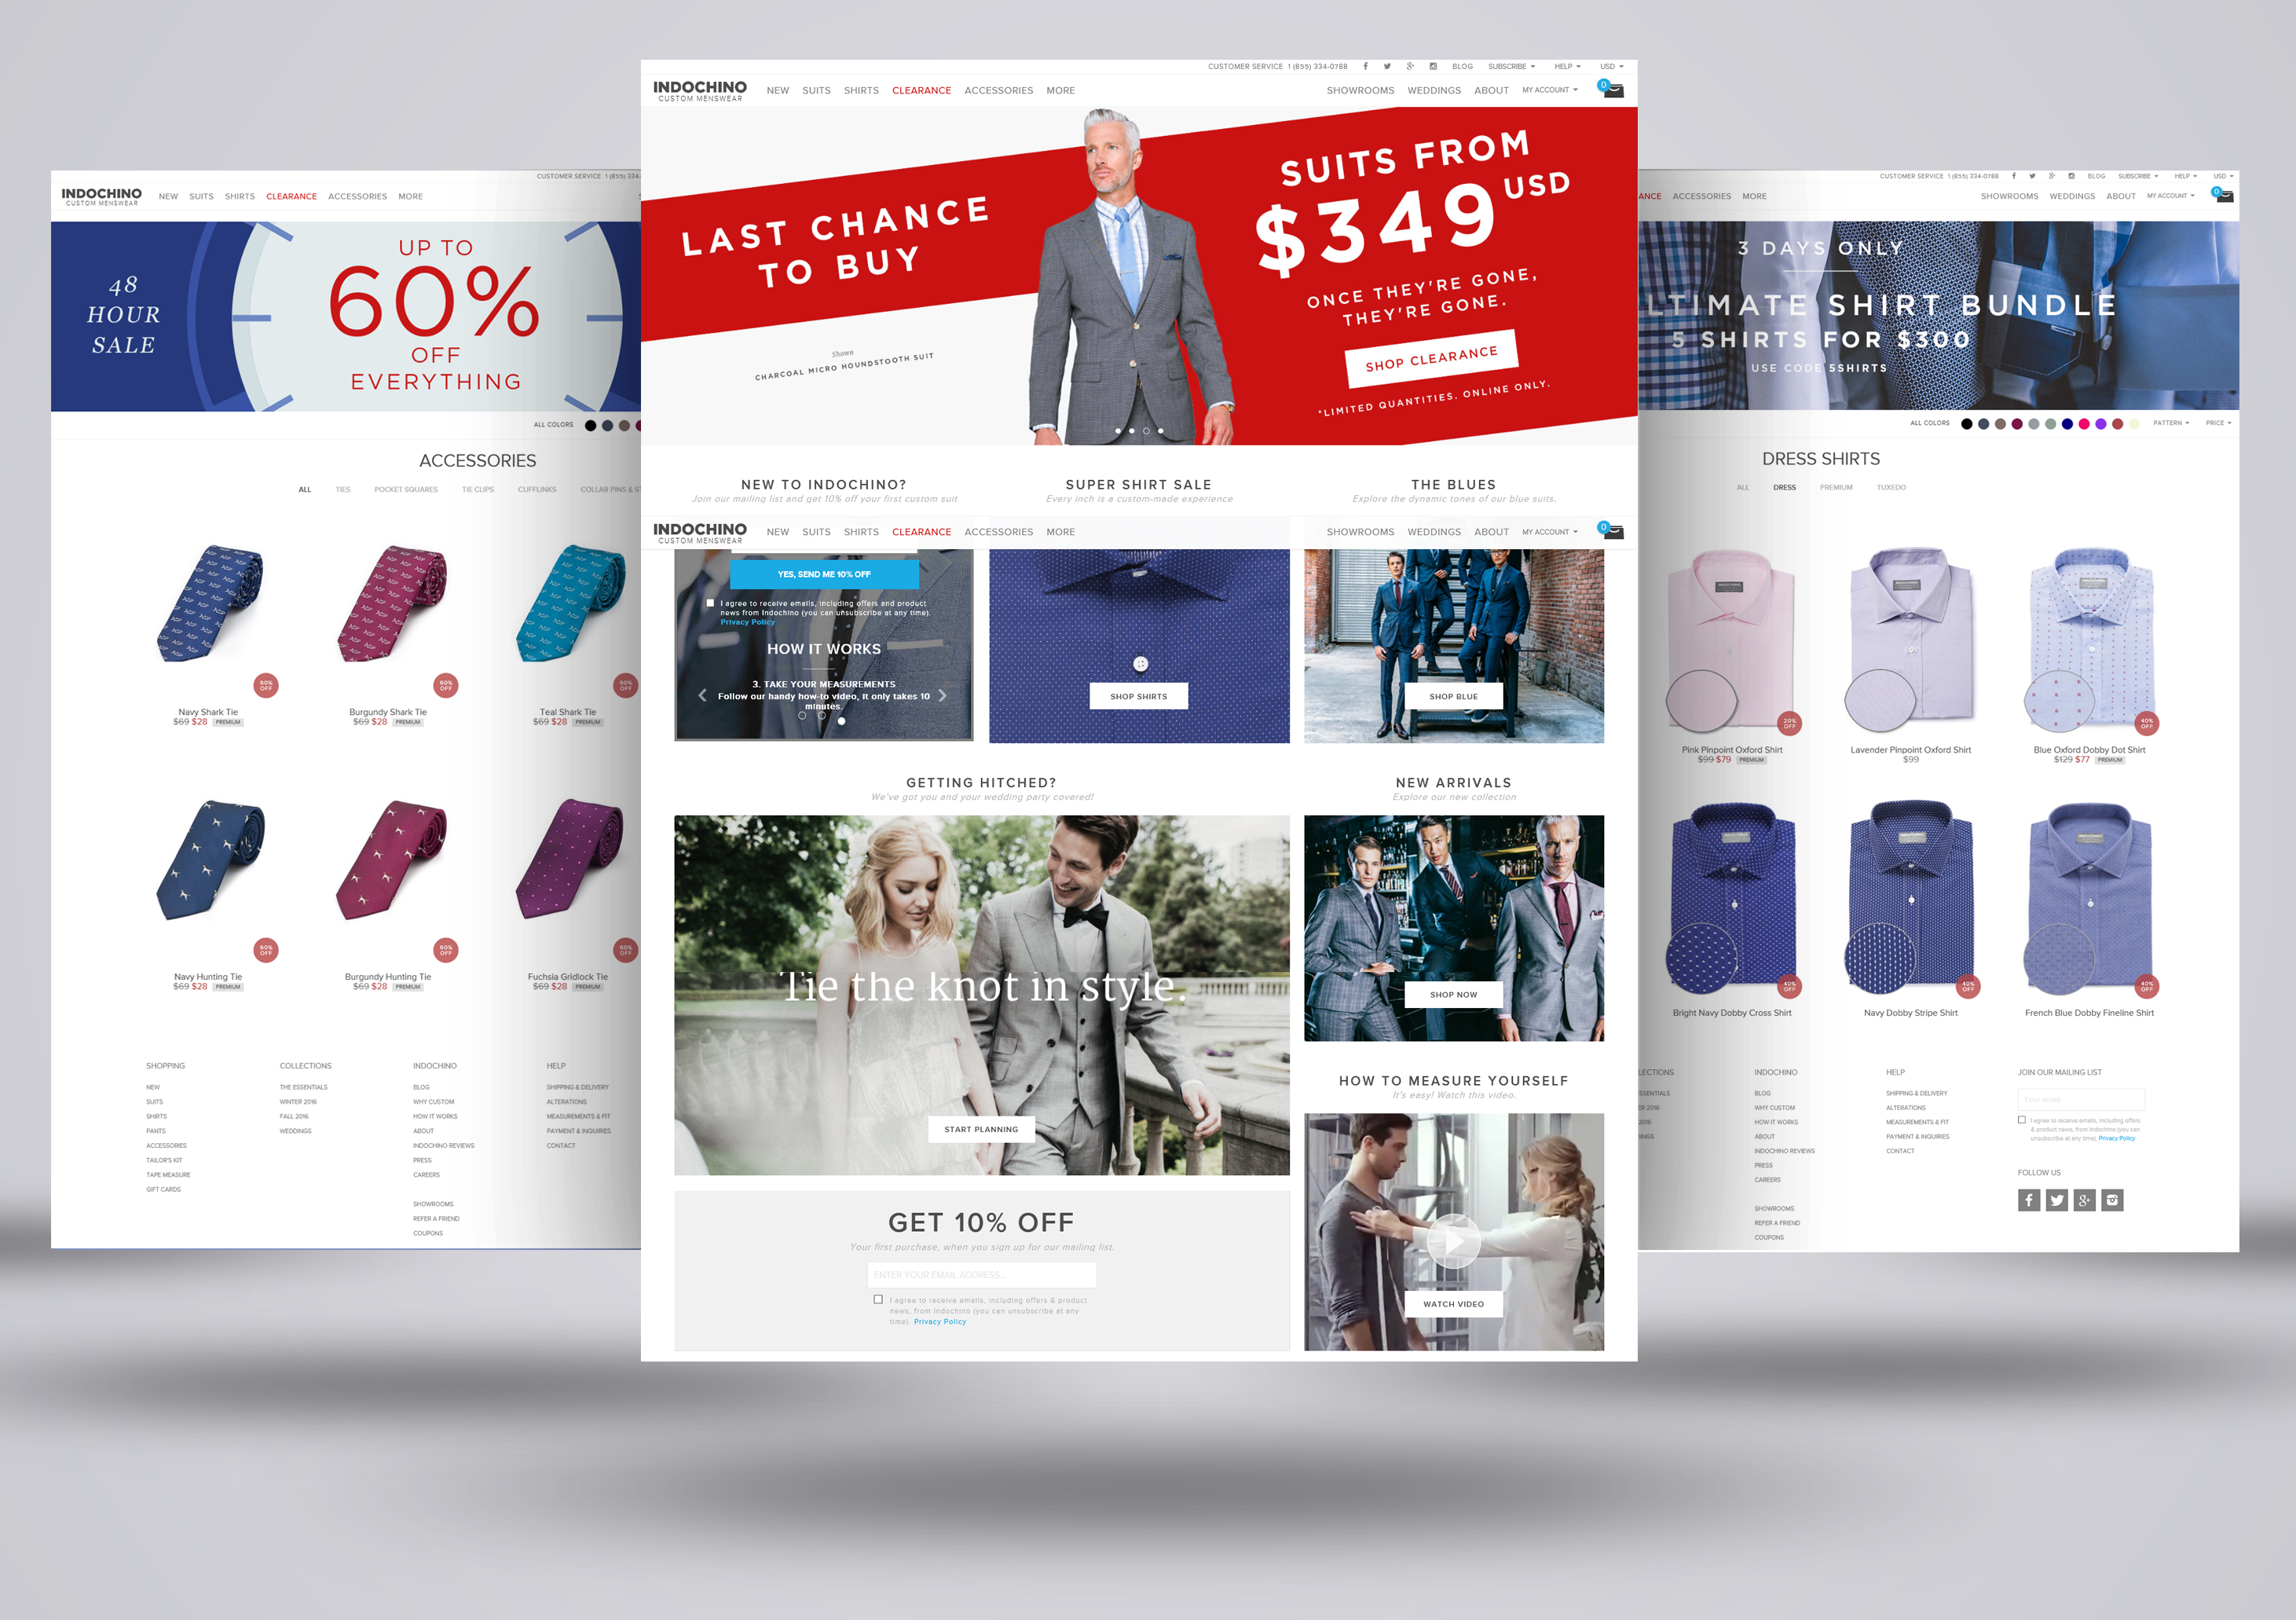 Raise is a gift card marketplace where users can sell or buy gift cards online at a discount.